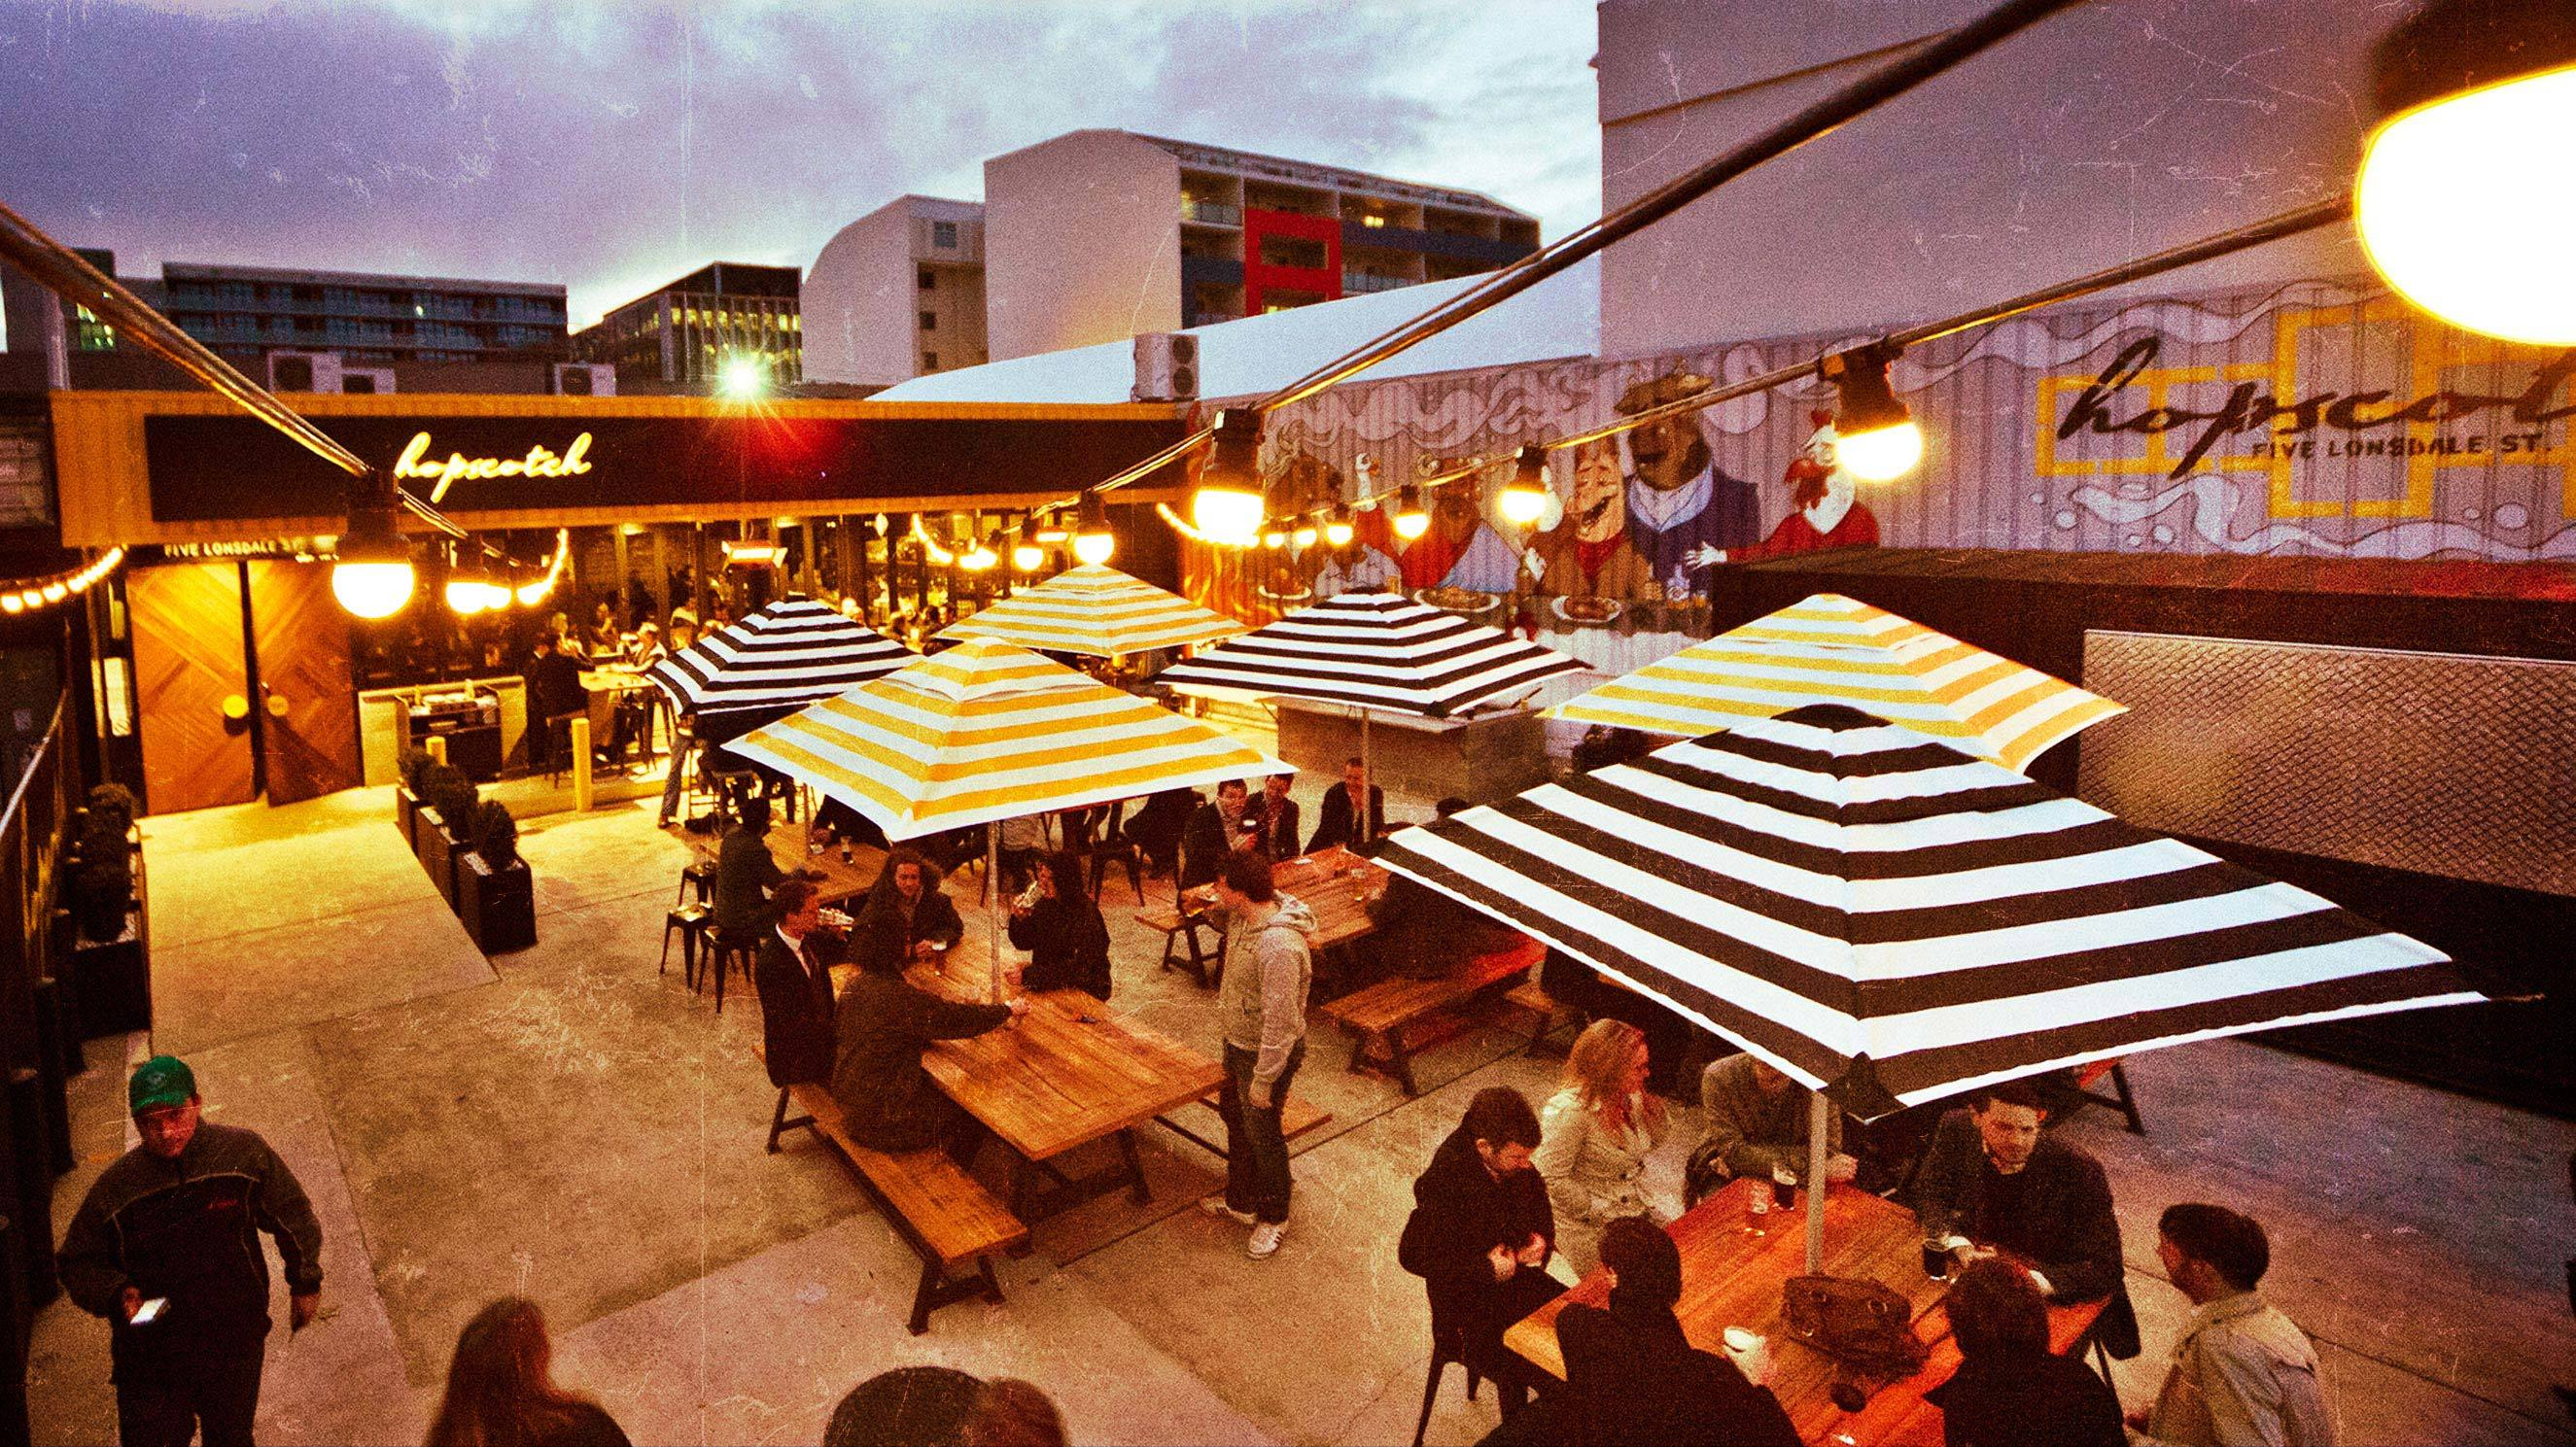 Where are the Best Beer Gardens in Canberra? - Canberra